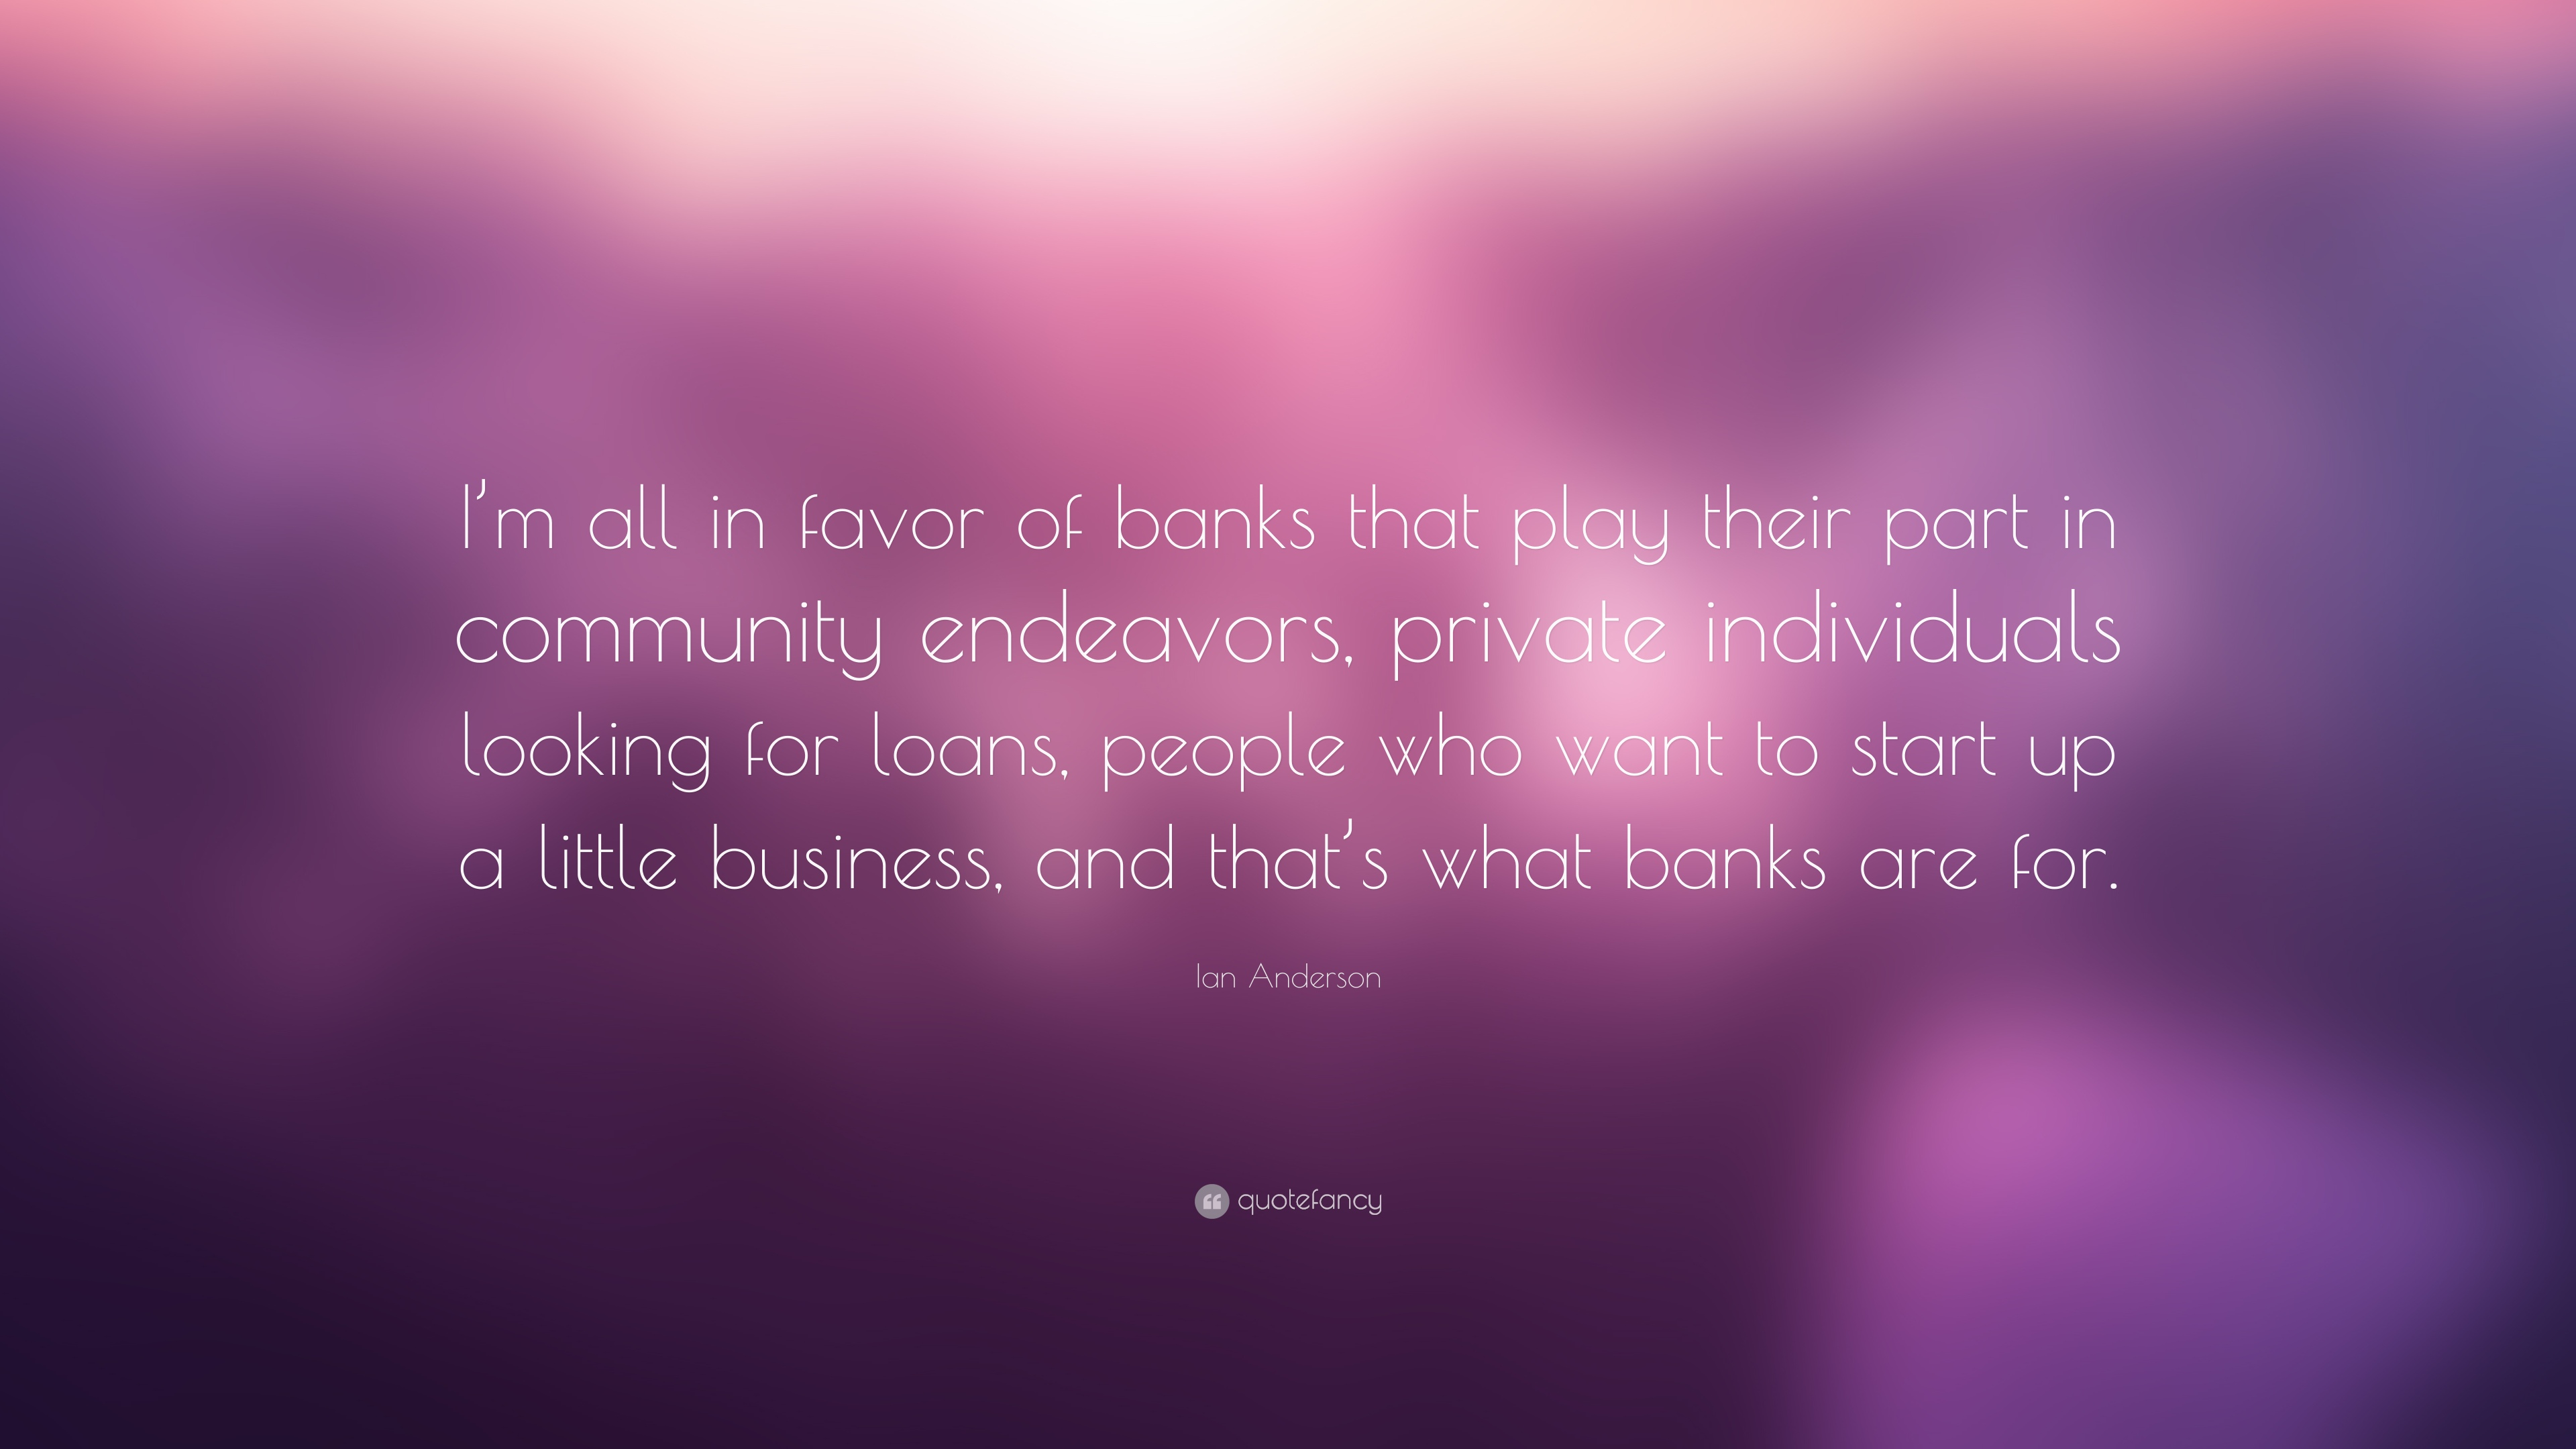 Ian Anderson Quote   U201ci U2019m All In Favor Of Banks That Play Their Part In Community Endeavors